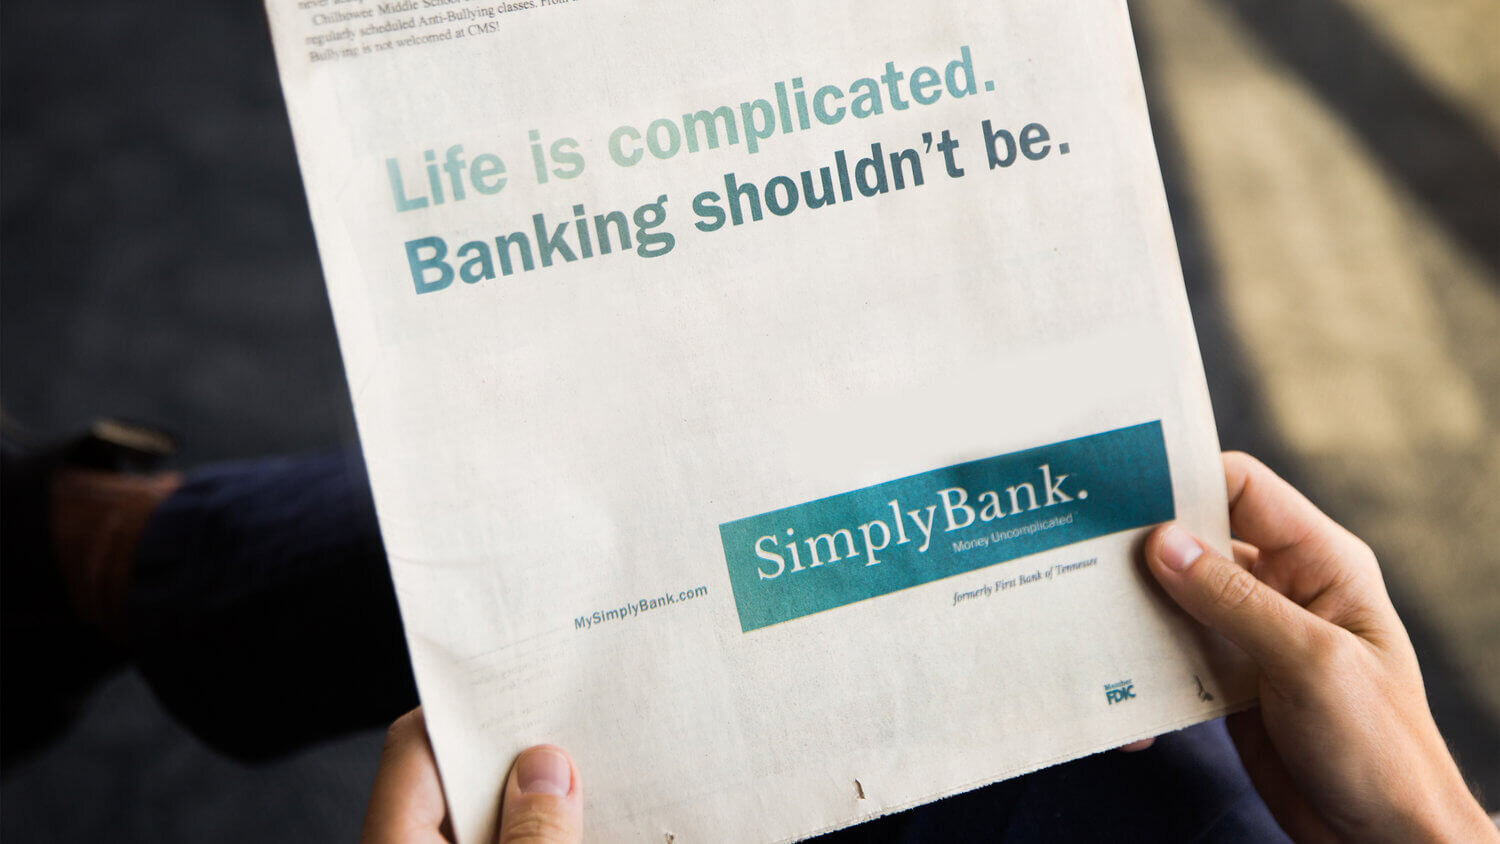 simply-bank-half-page-newspaper-ad-life-is-complicated-banking-shouldnt-be.jpg